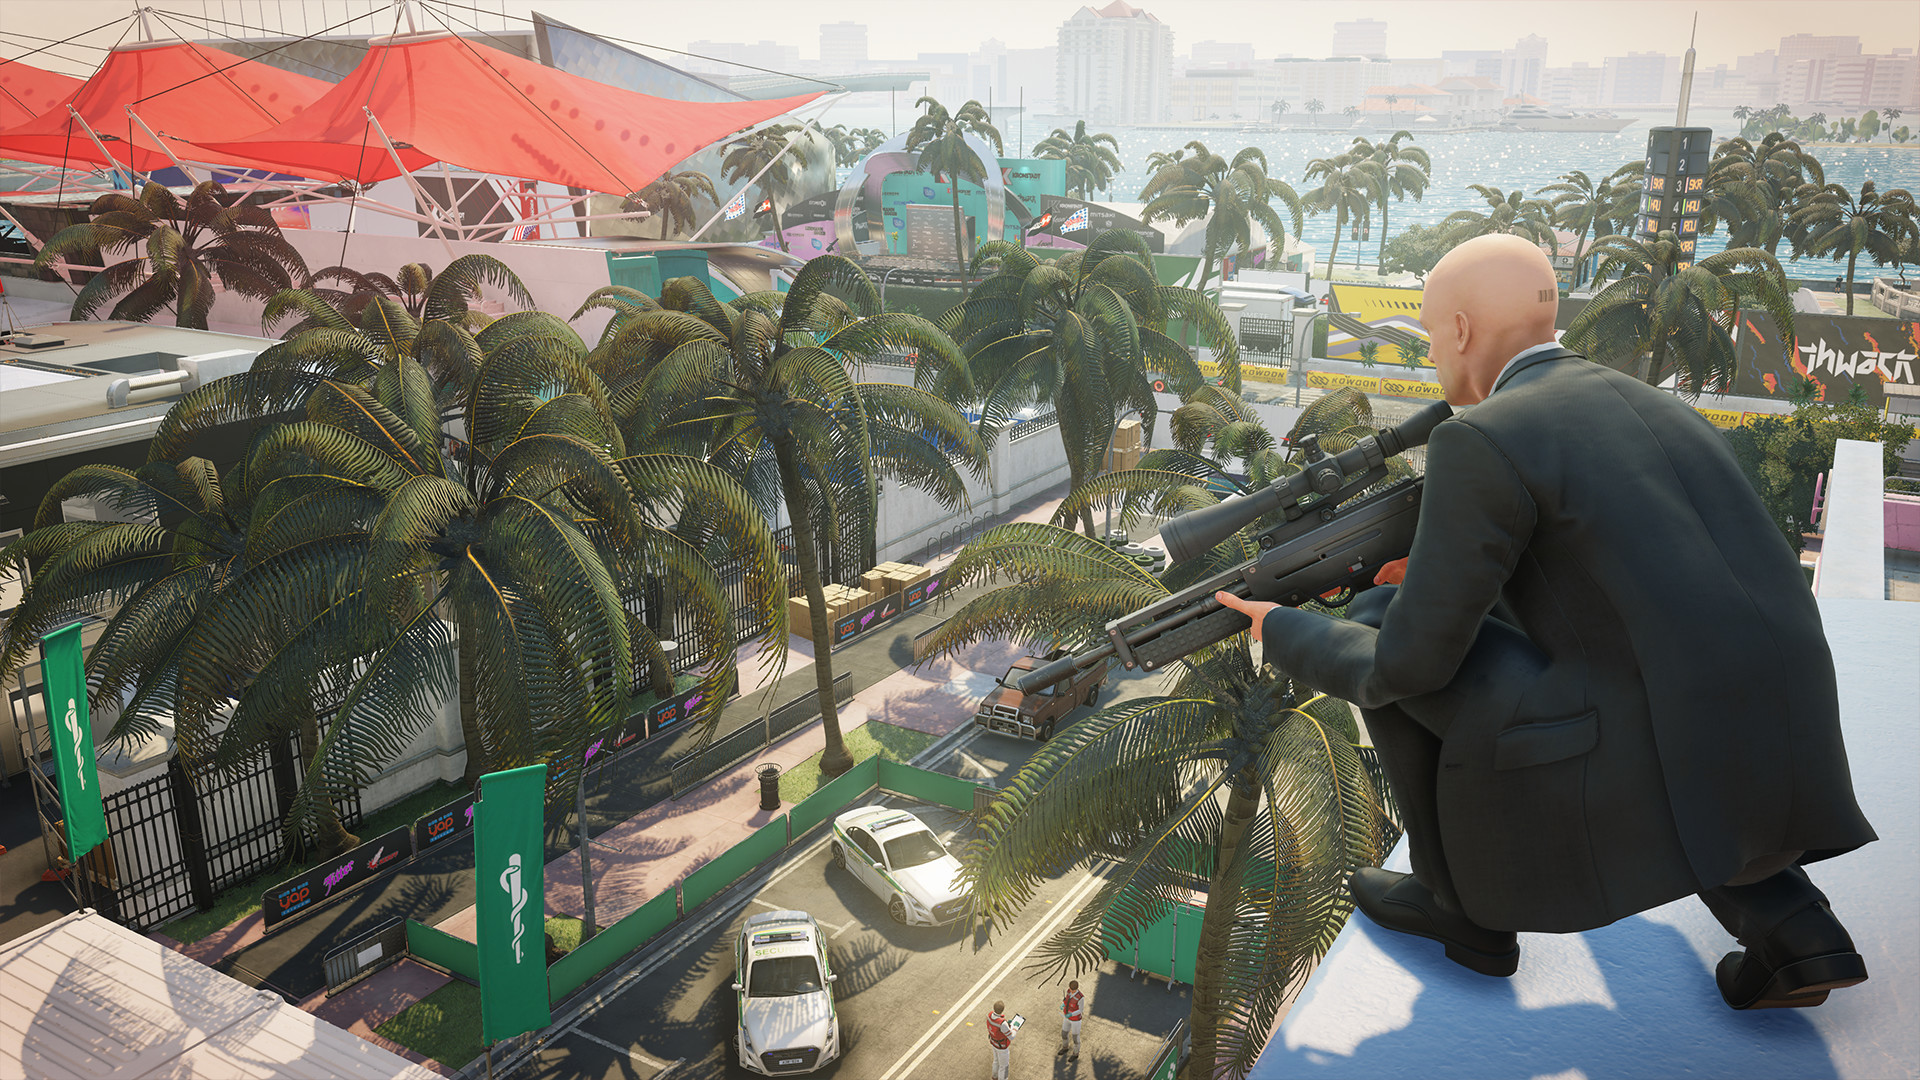 Hitman 2 sneaks onto PC and consoles later this year